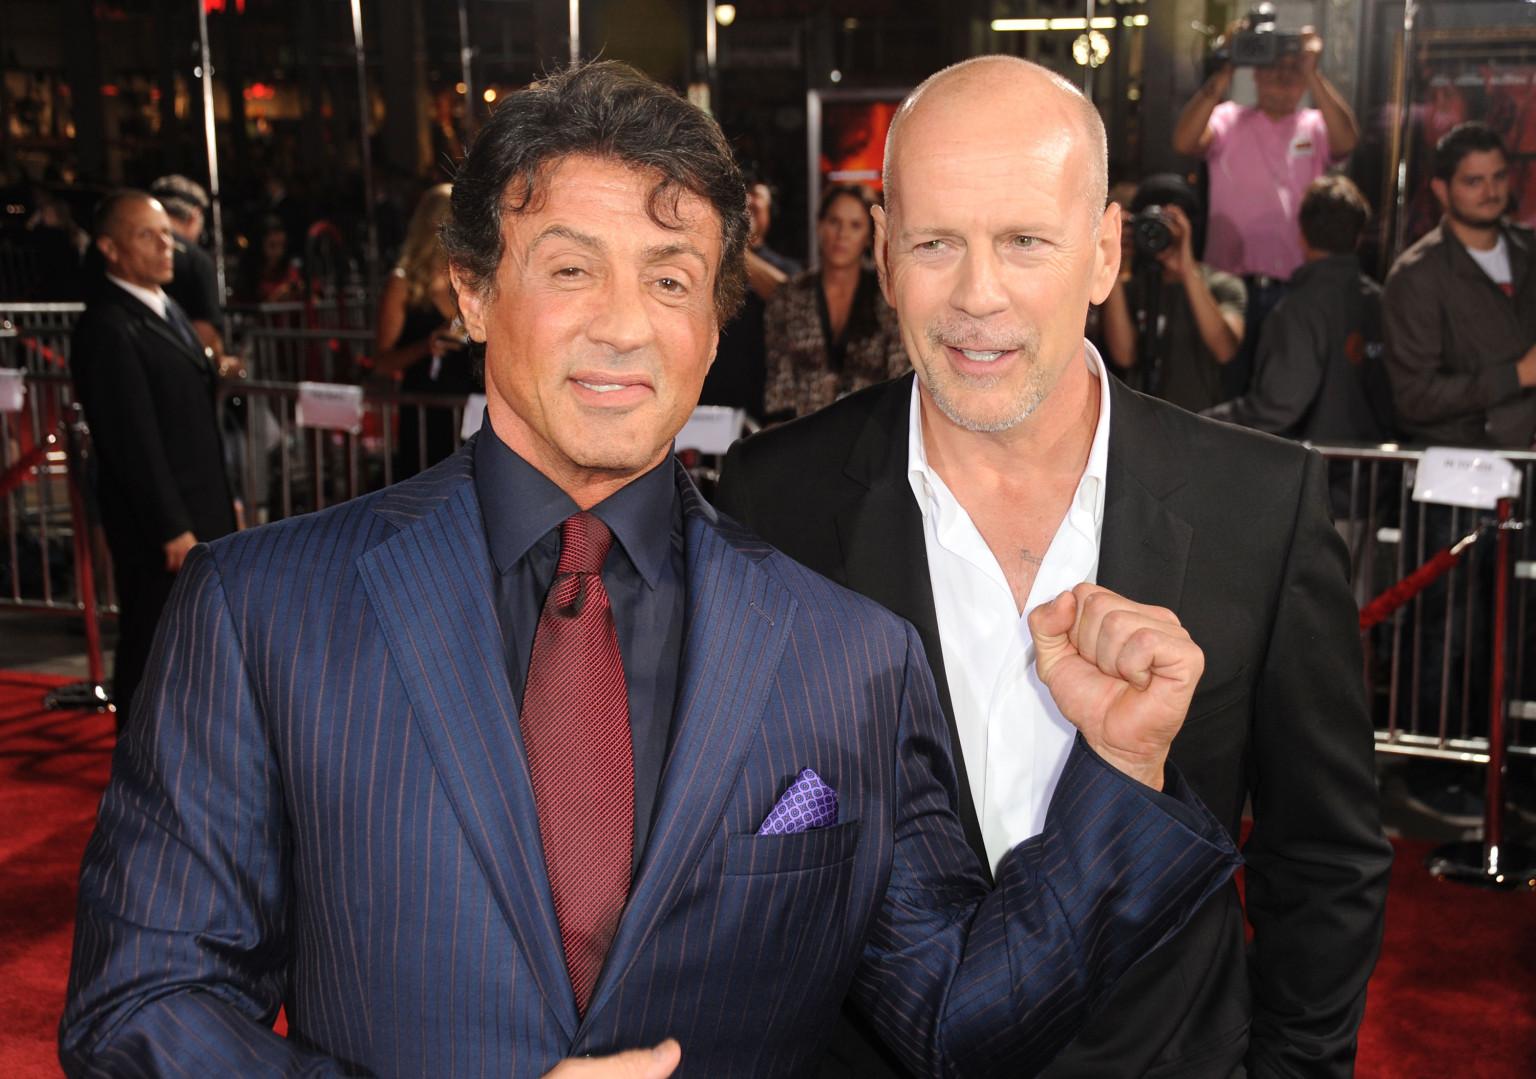 Photo of Bruce Willis & his friend actor  Sylvester Stallone - Longtime